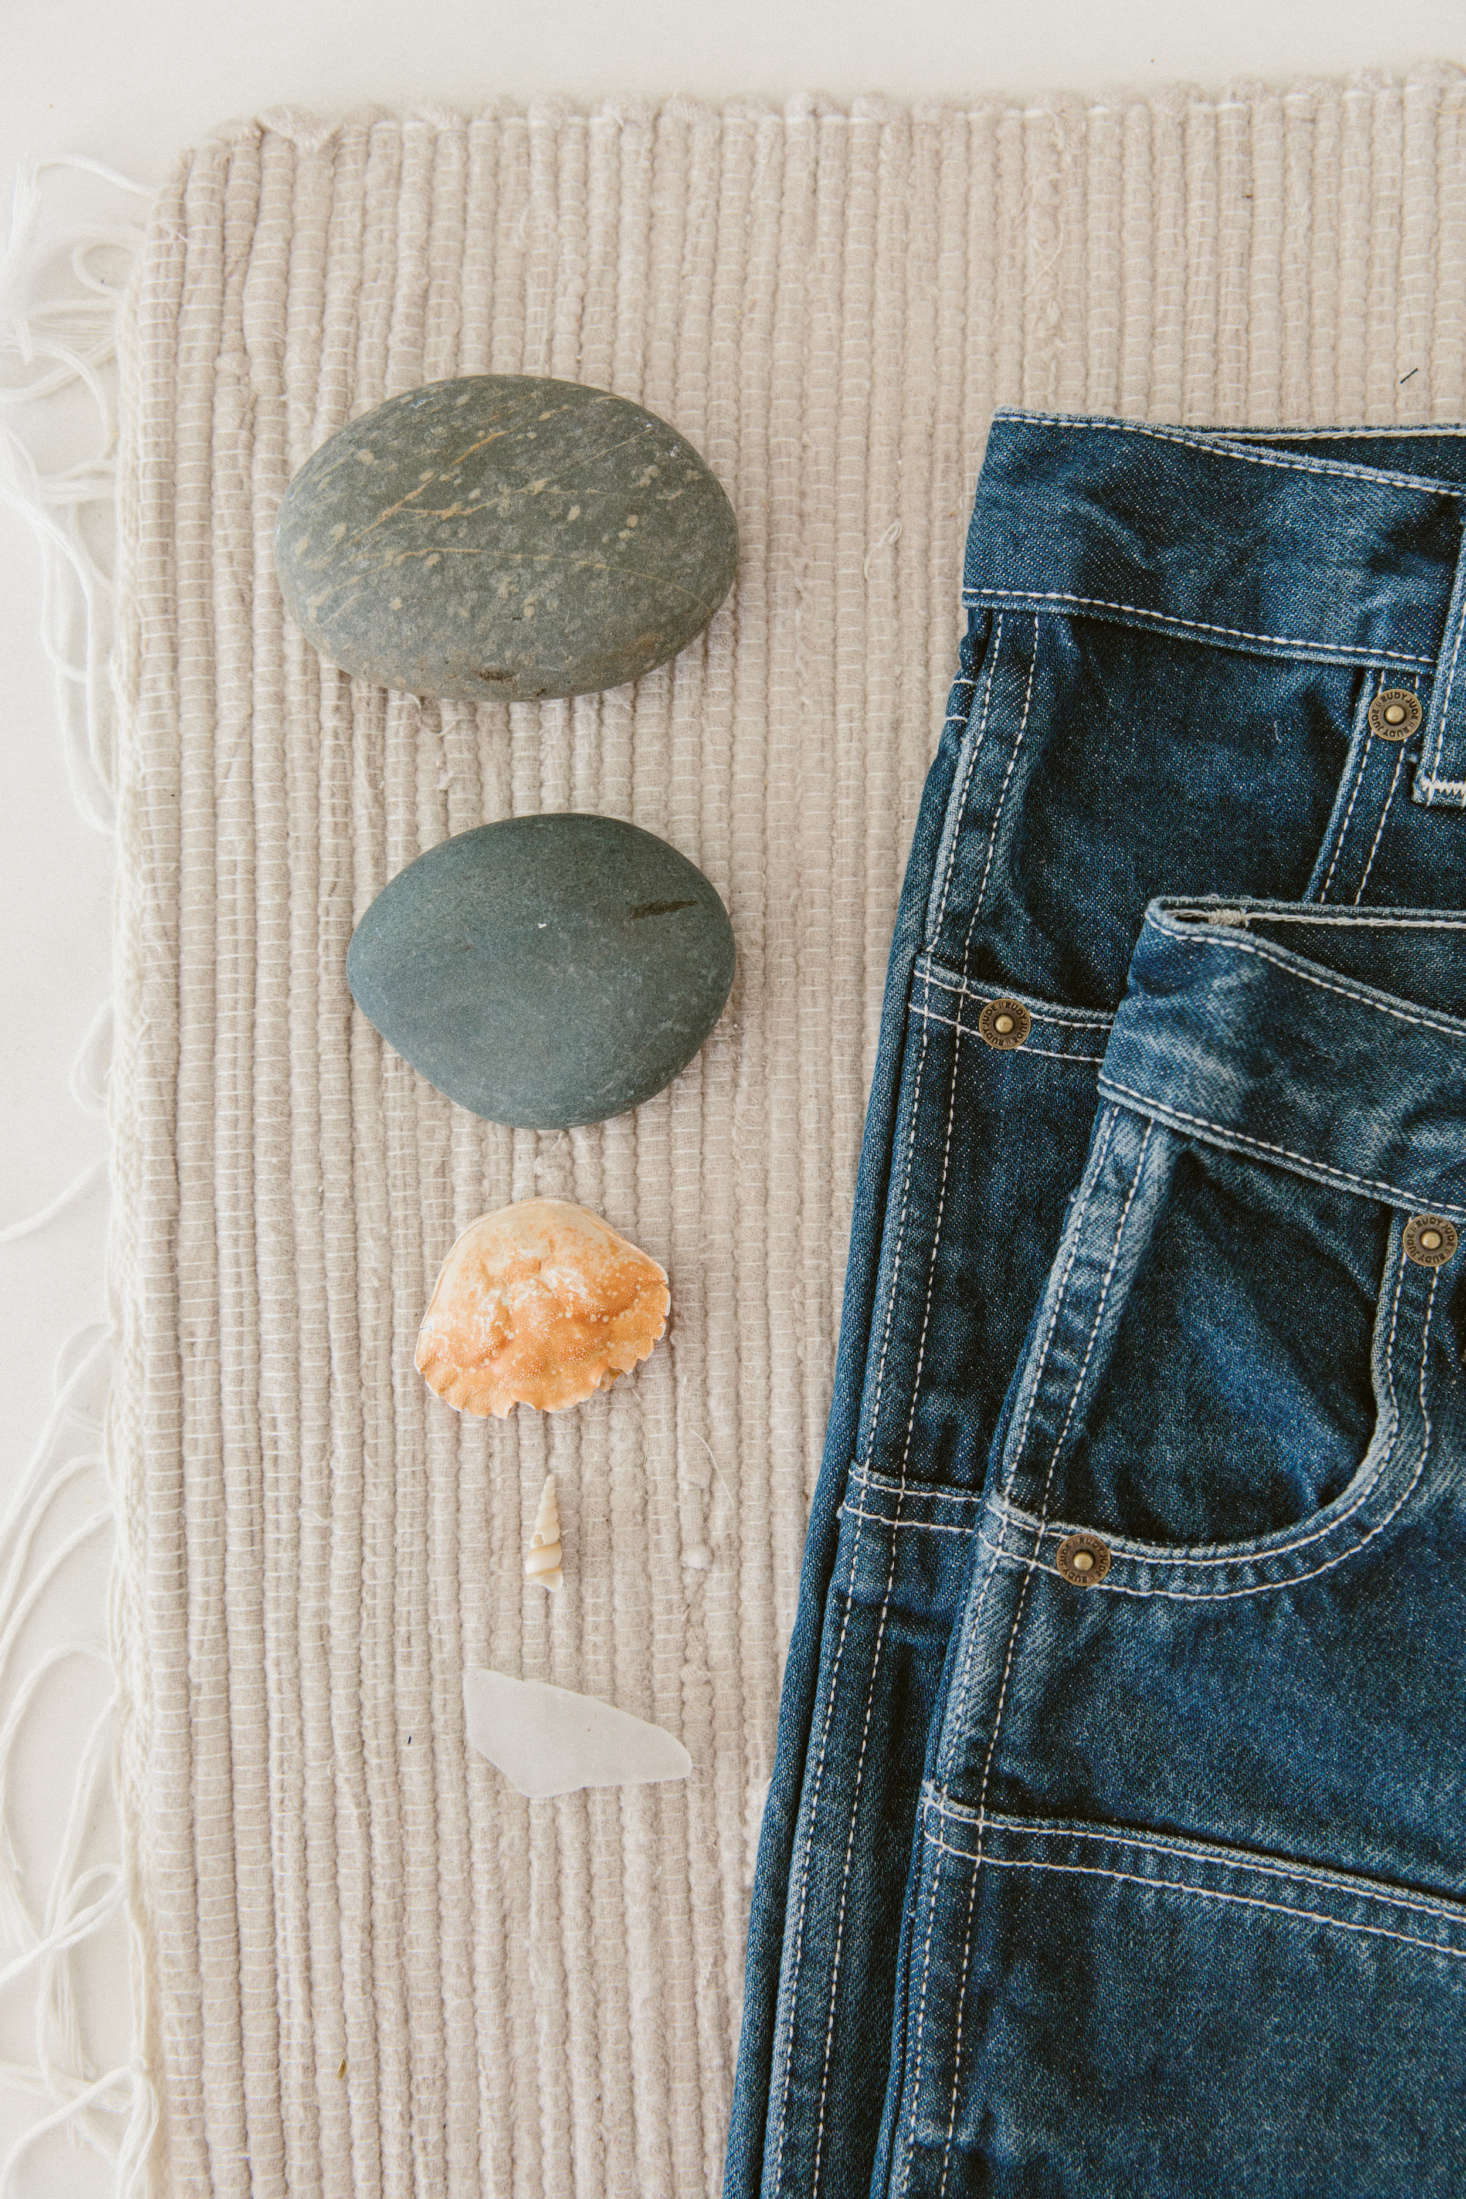 Smooth rocks and a hollow crab shell next to some Rudy Jude denim.